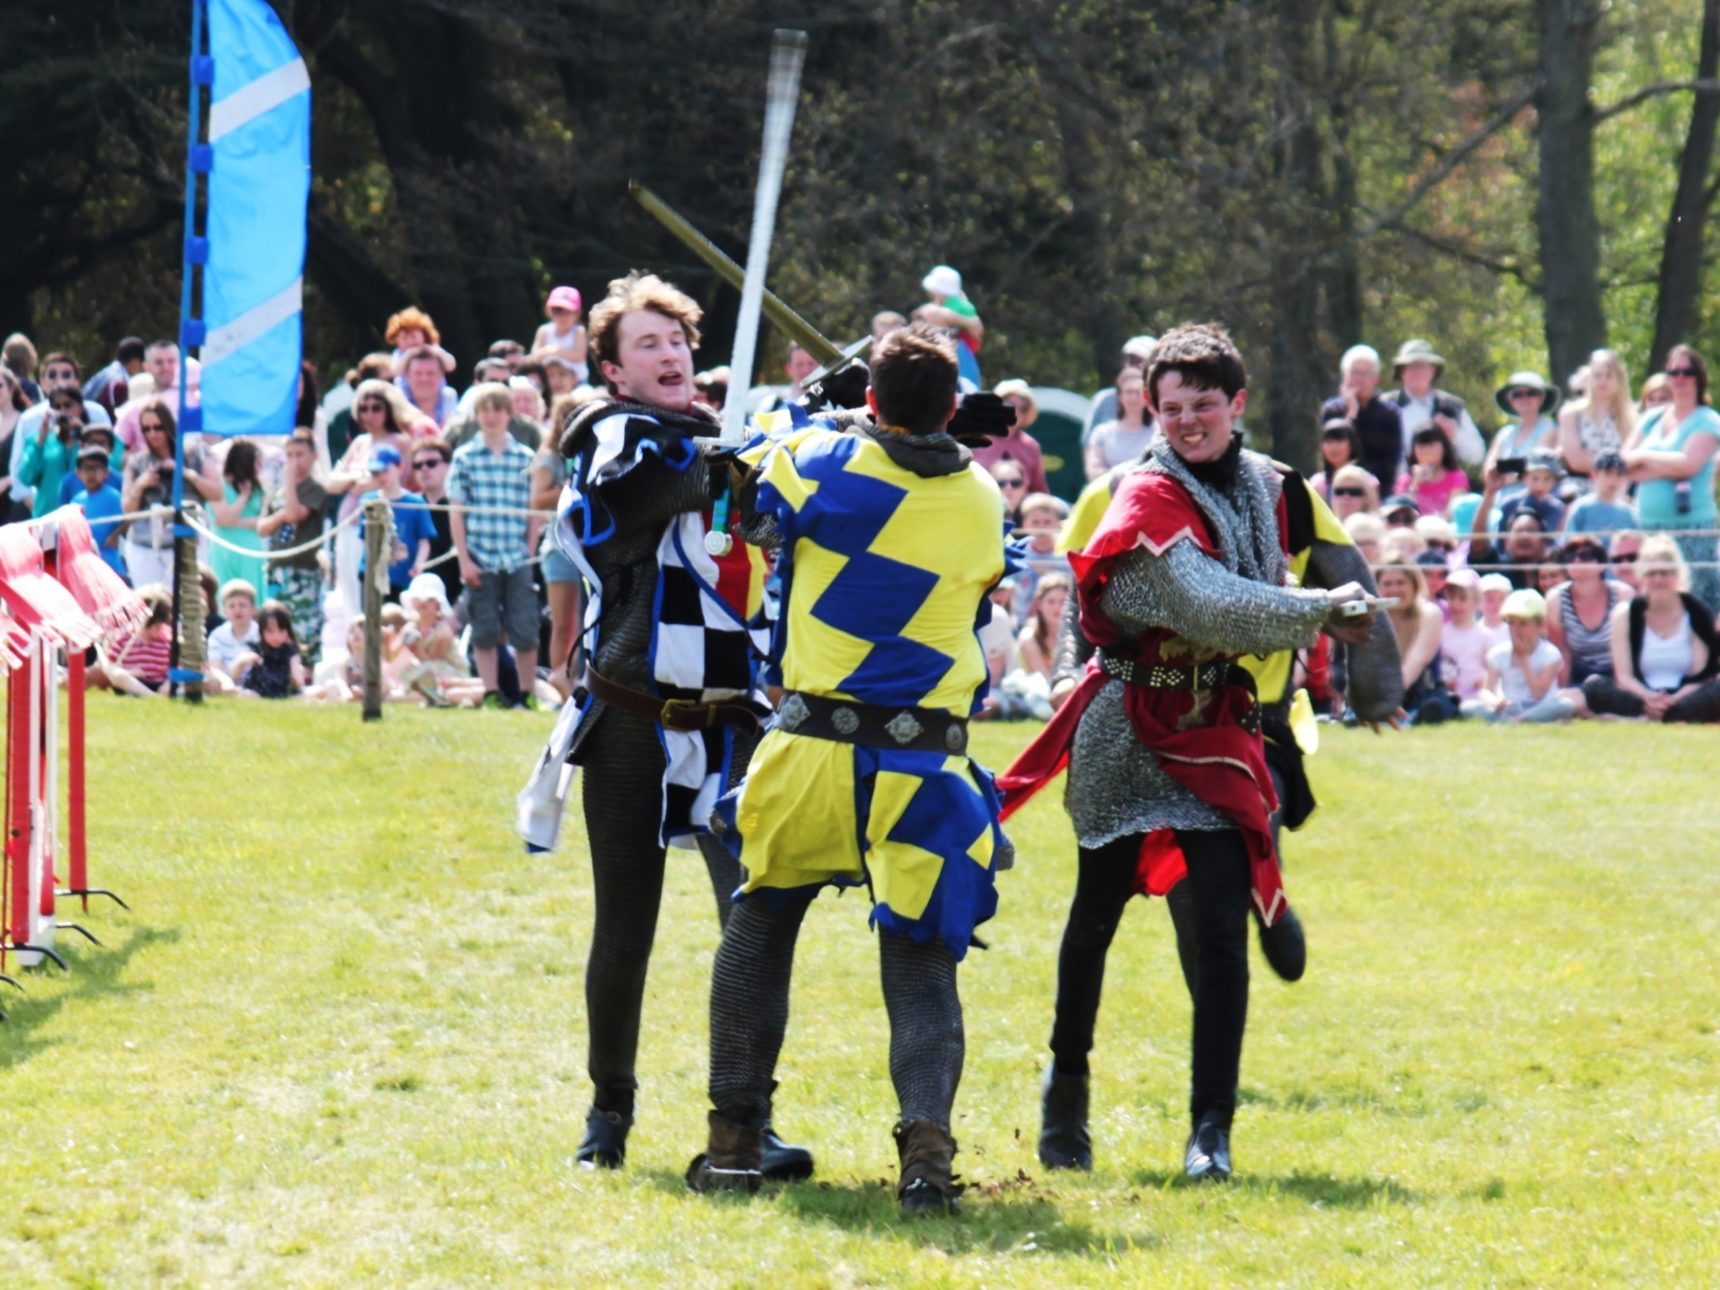 A group of knights clash on foot